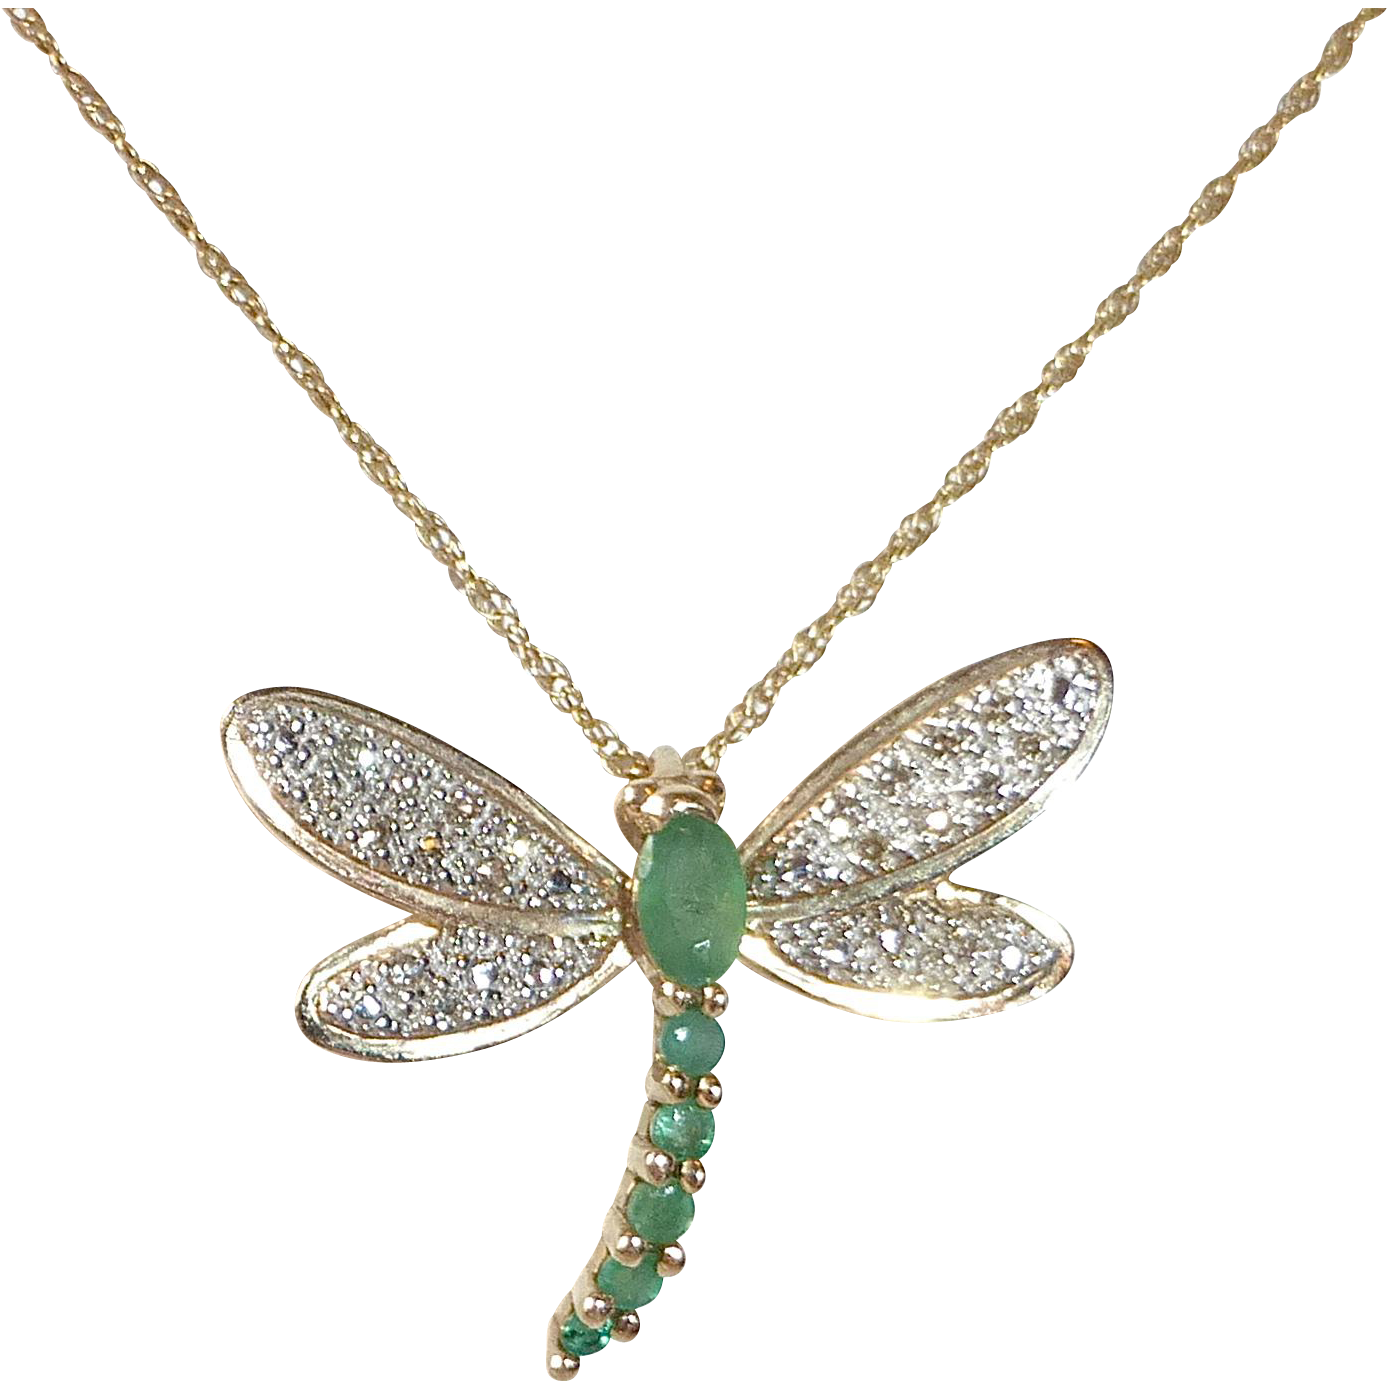 dragonfly silver alex in monroe podarok products necklace